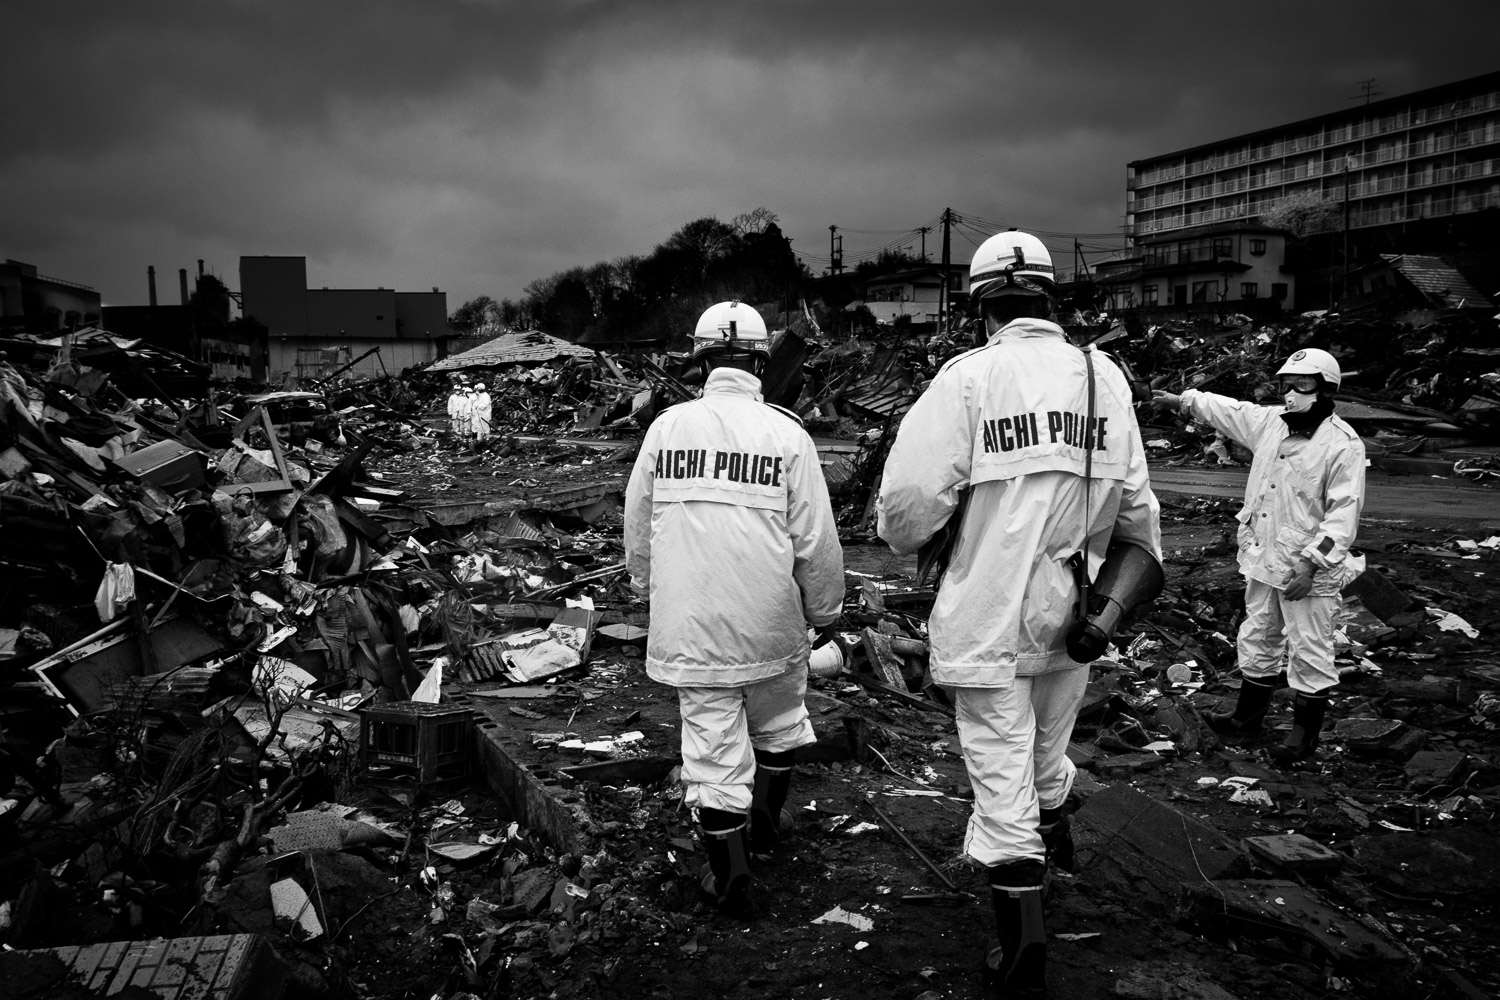 Police forces from all over the country are searching the rubble for bodies, in an increasing smell of decay.